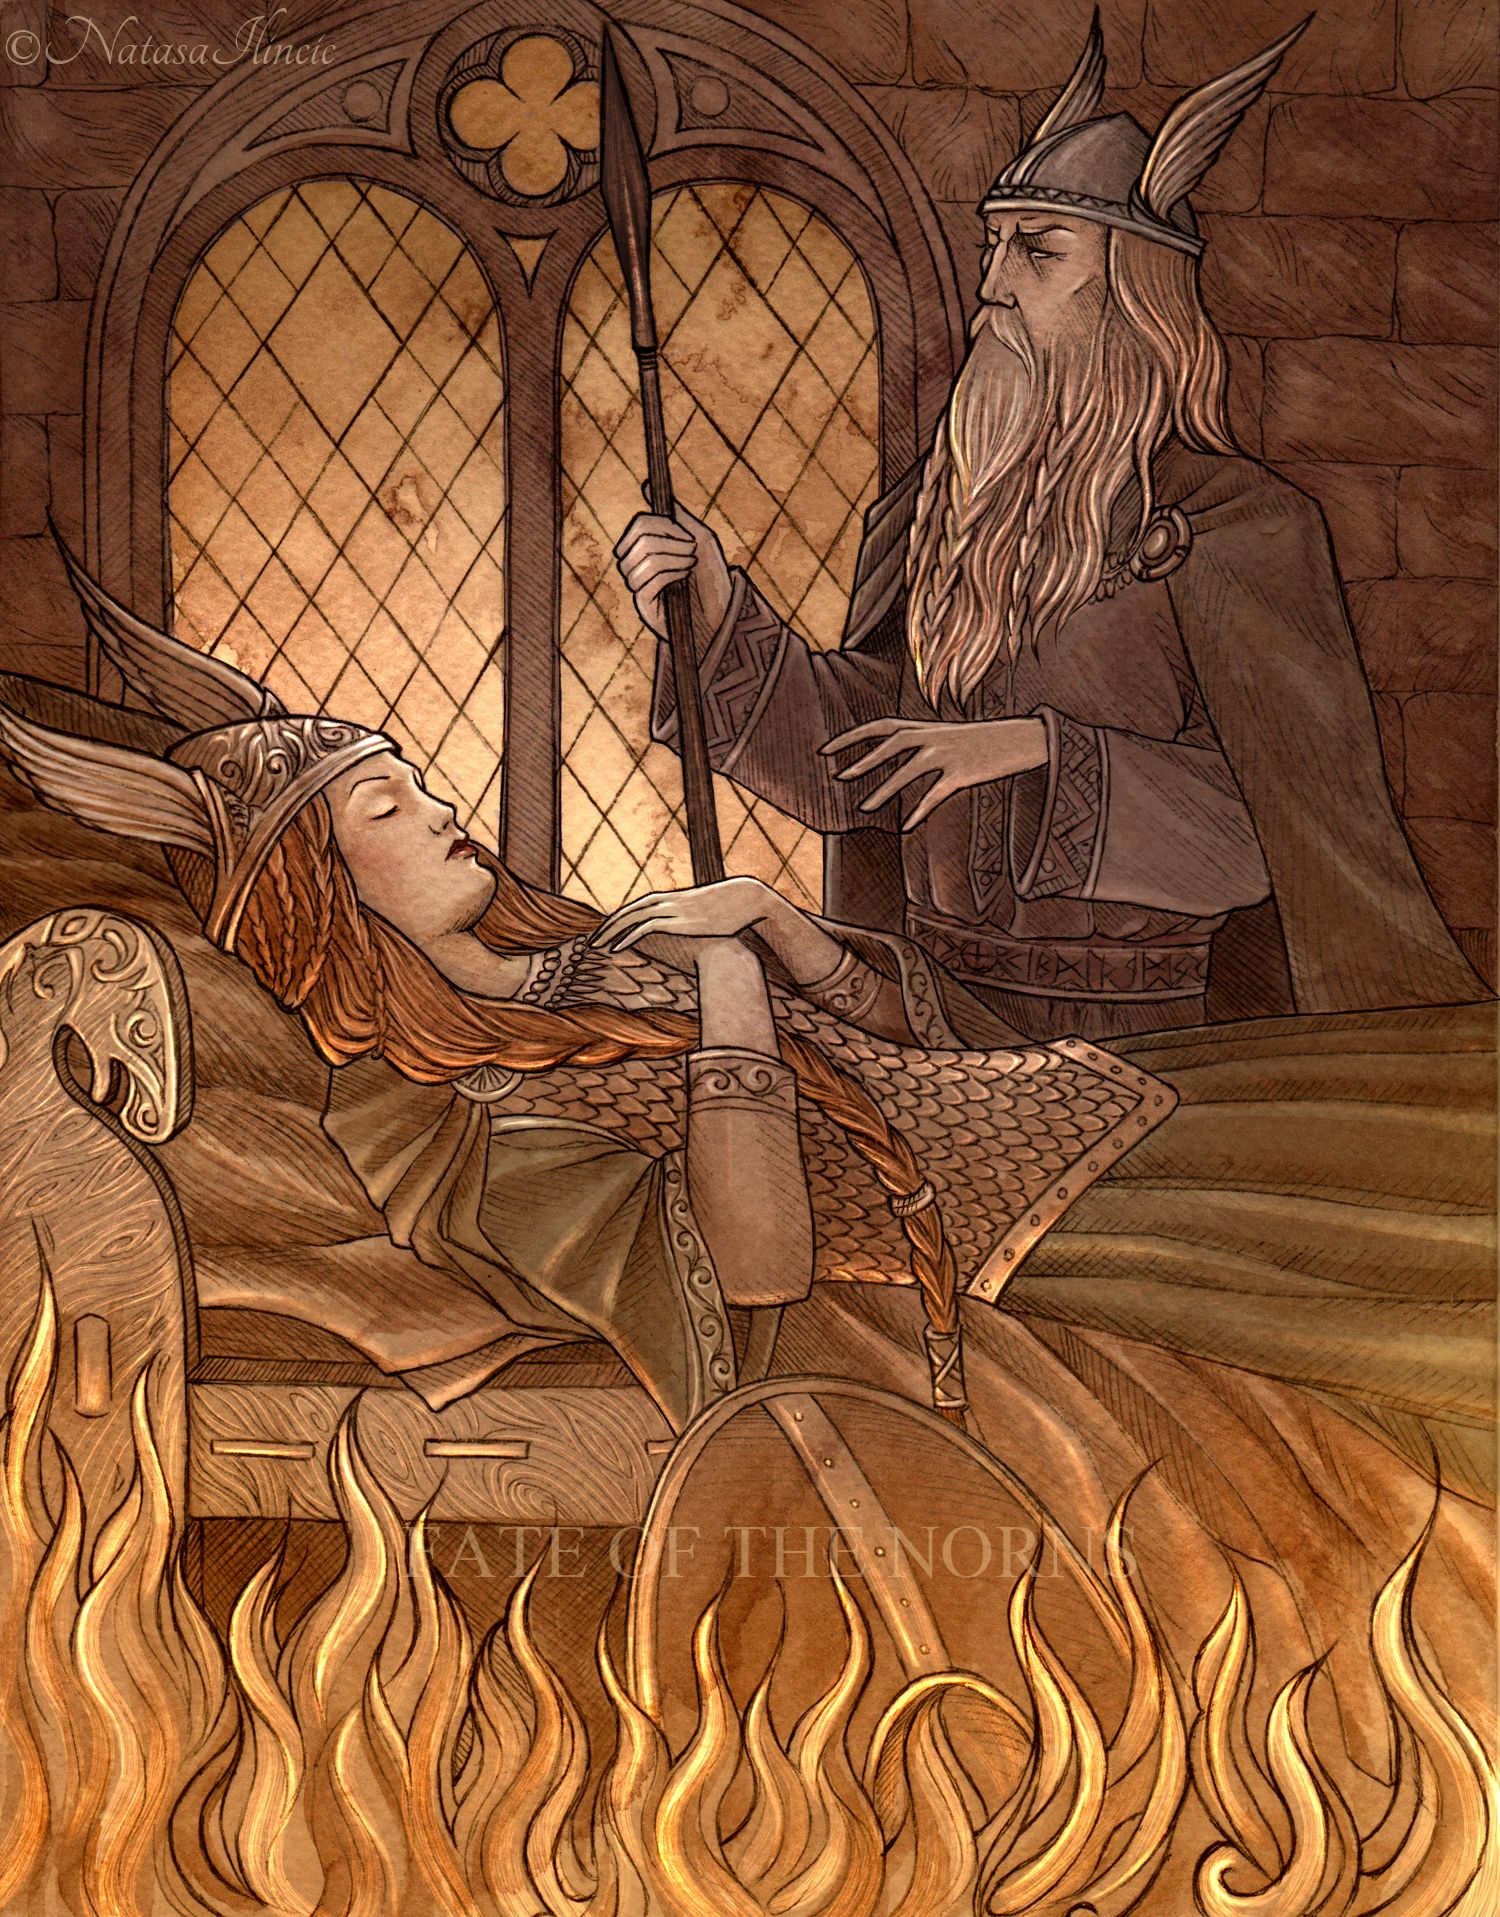 Odin imprisons Brunhilde in a ring of fire. Ink, watercolour, PS. Artwork for The Illuminated Edda